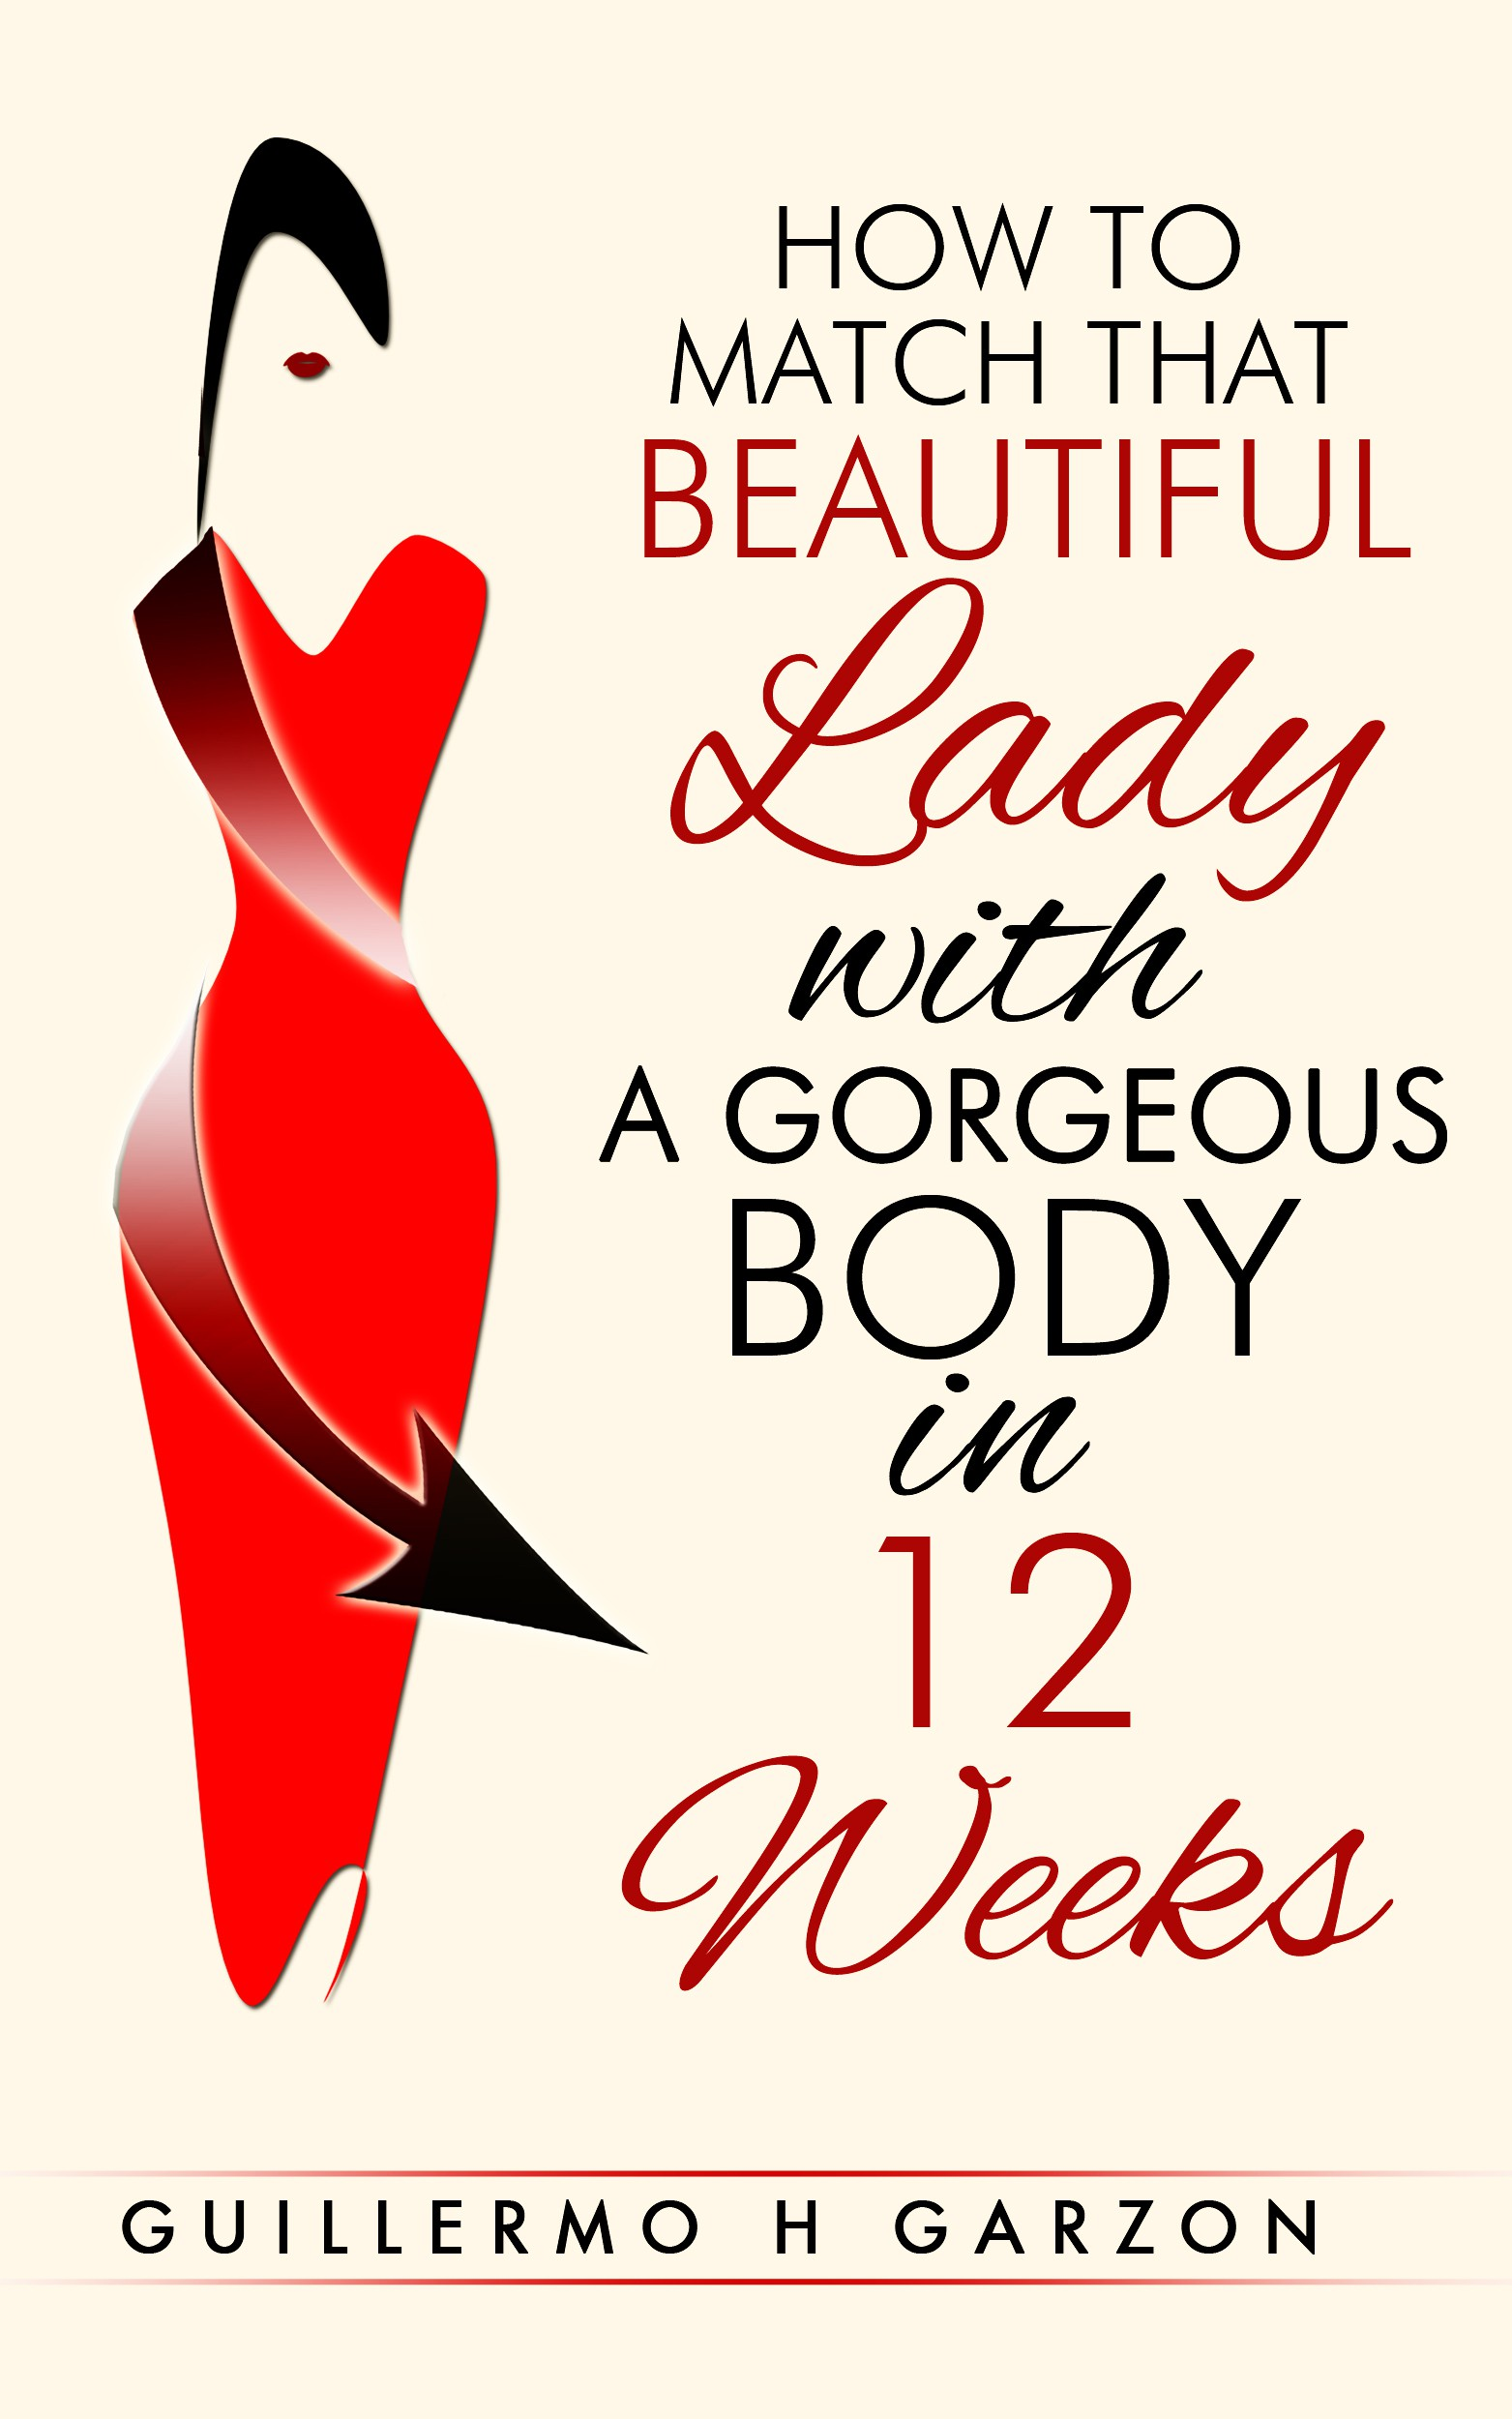 Get the body you want in 12 weeks